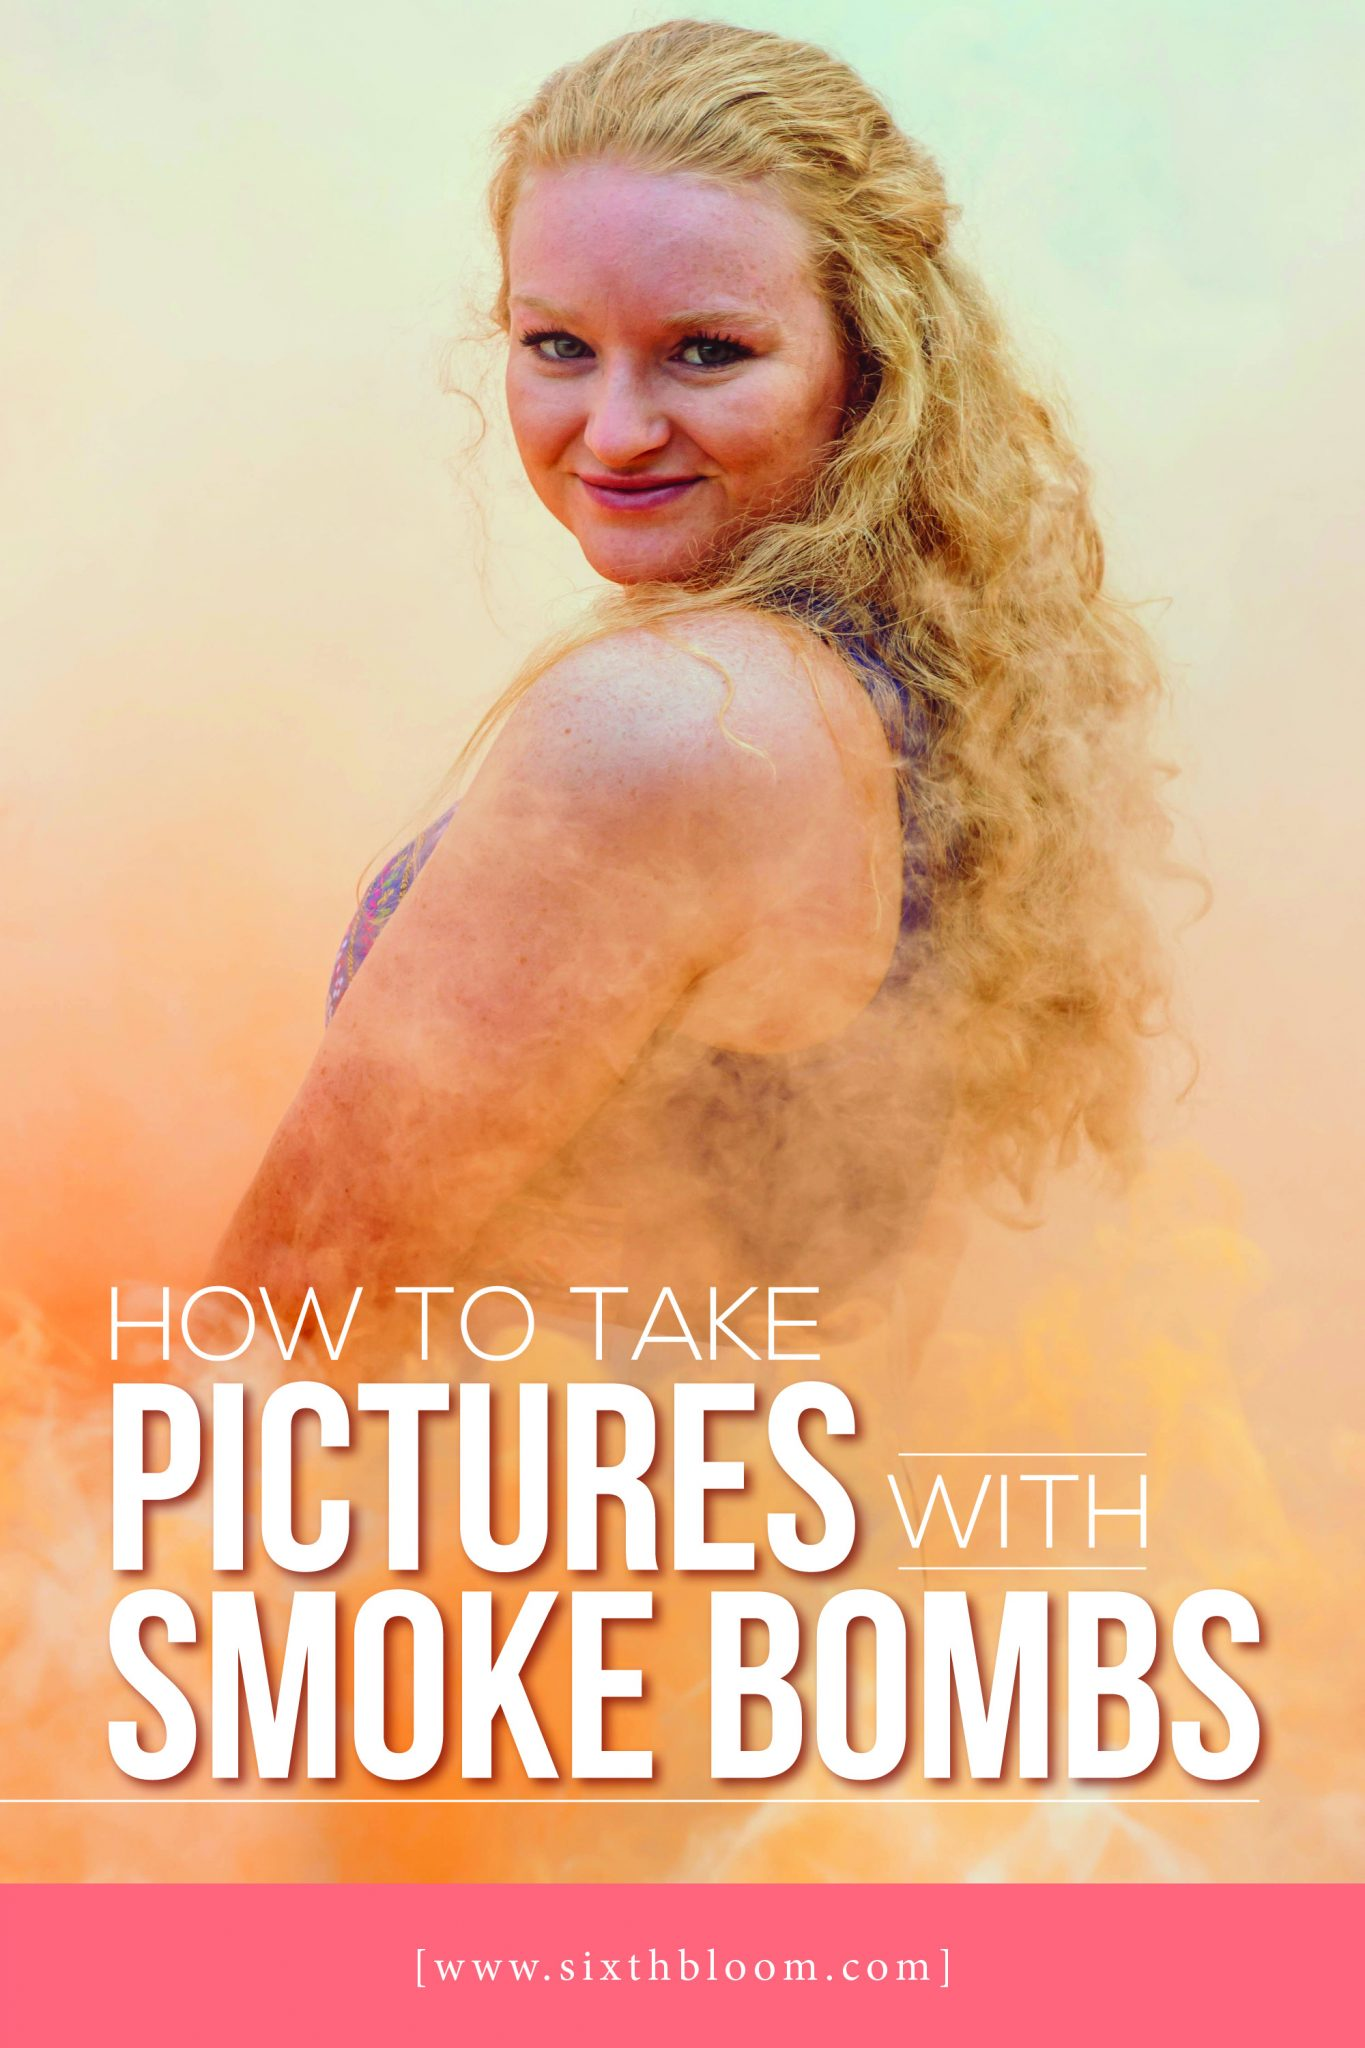 tips for taking pictures with smoke bombs